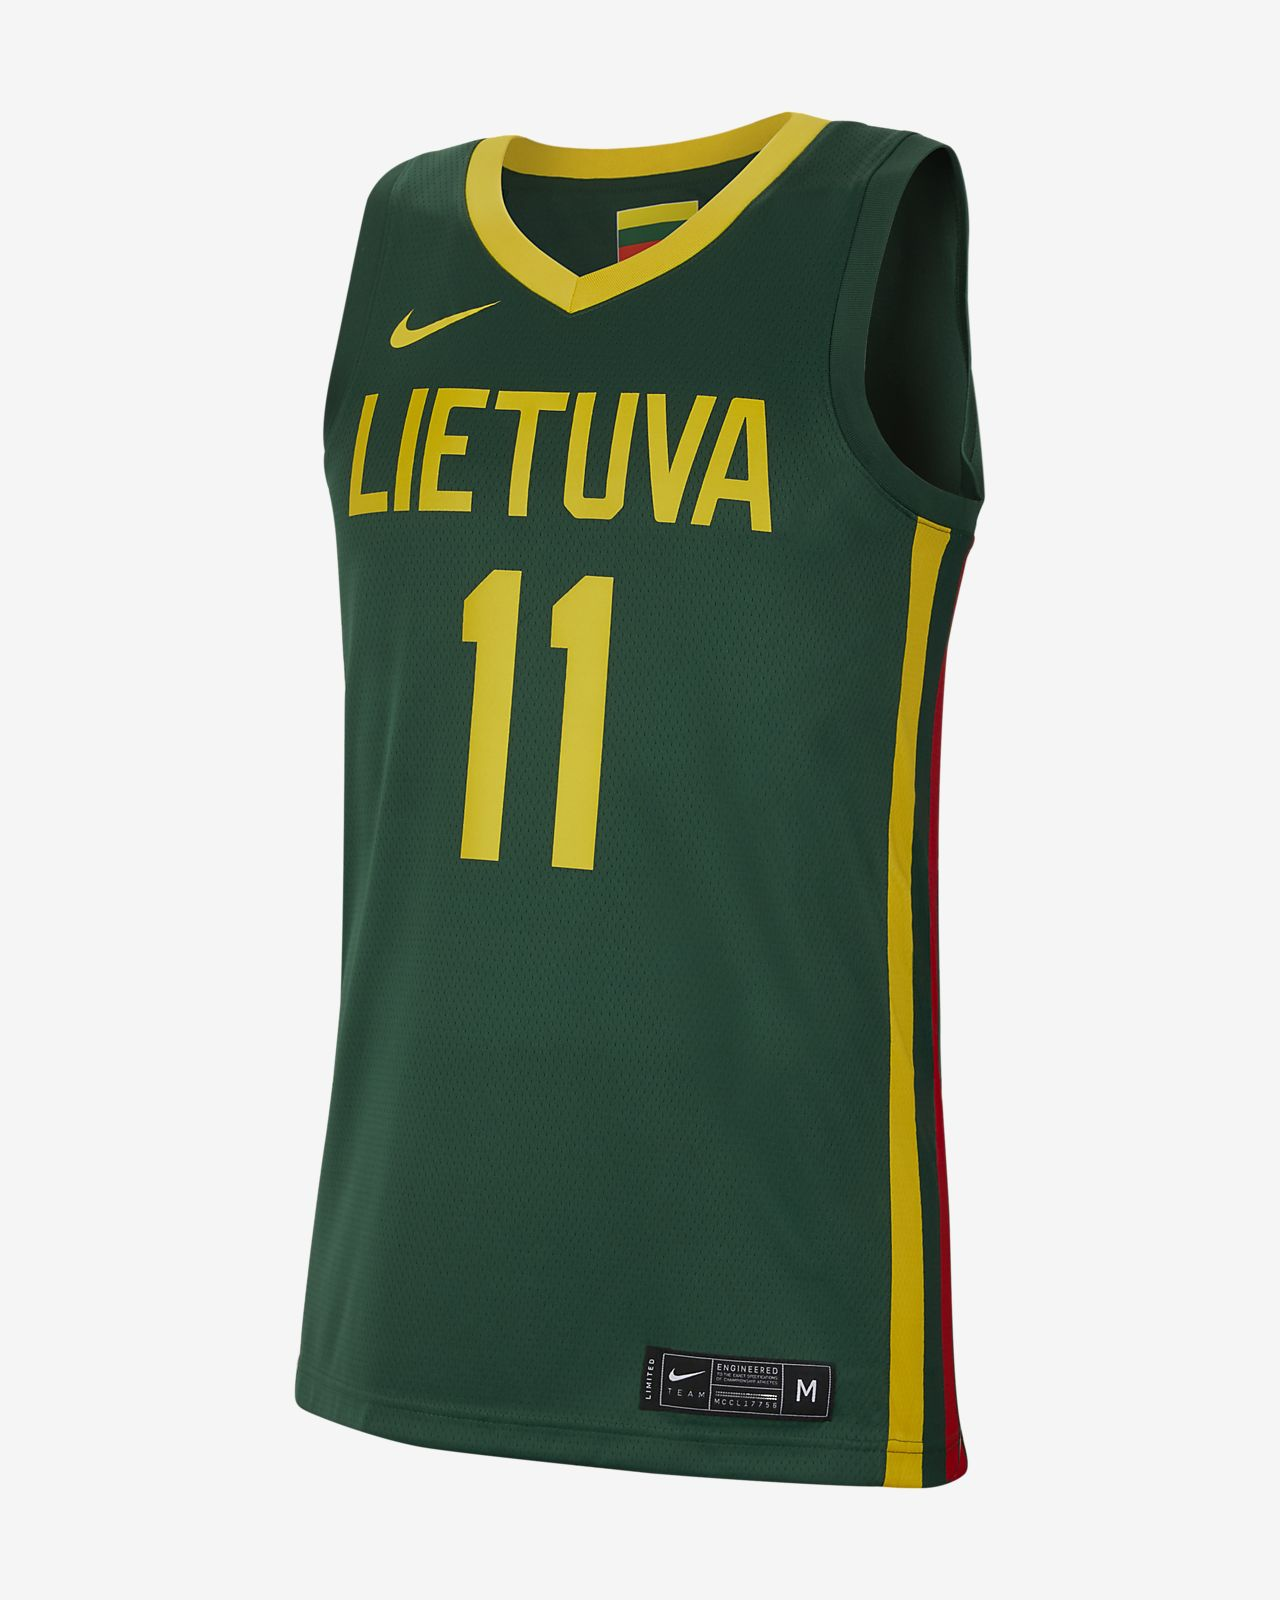 size 40 93847 0195a Lithuania Nike (Road) Men's Basketball Jersey